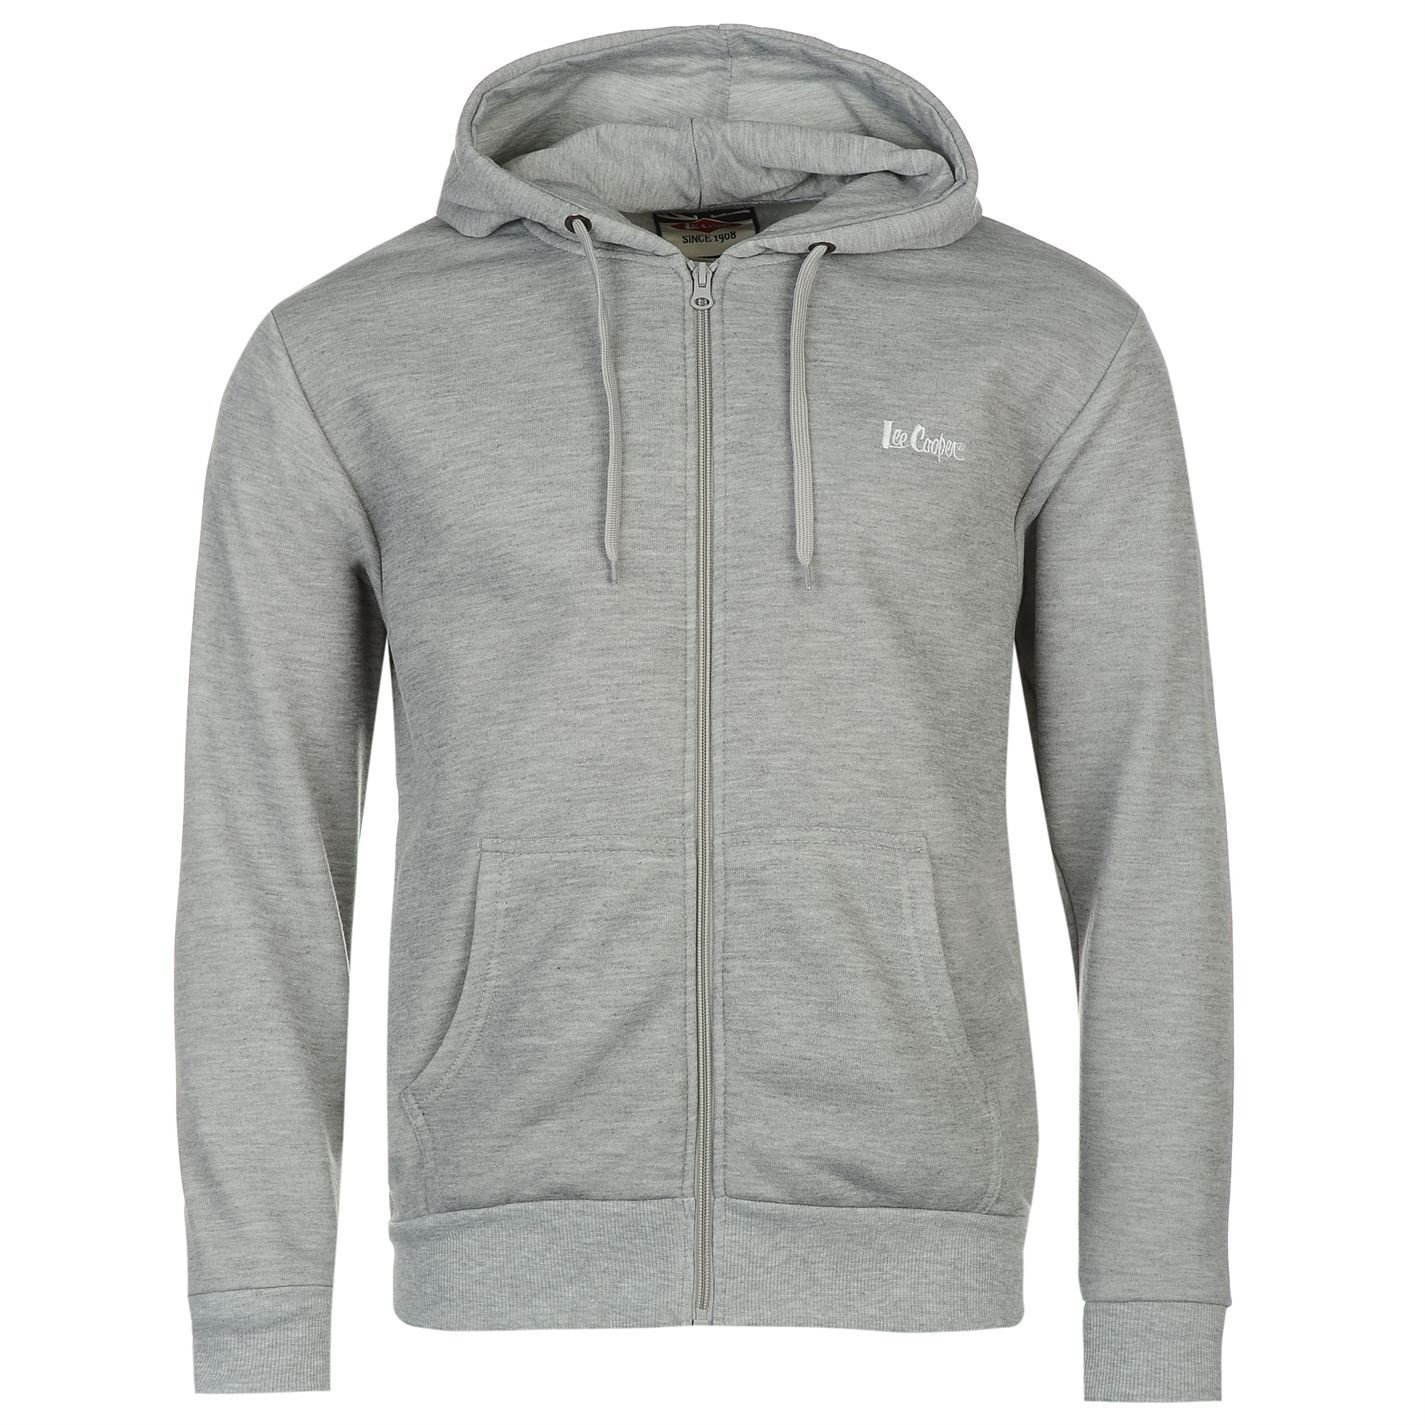 2e78a21579 Lee Cooper Full Zip Hoody Mens Grey Hoodie Hooded Jacket Sweatshirt Top:  Amazon.co.uk: Clothing